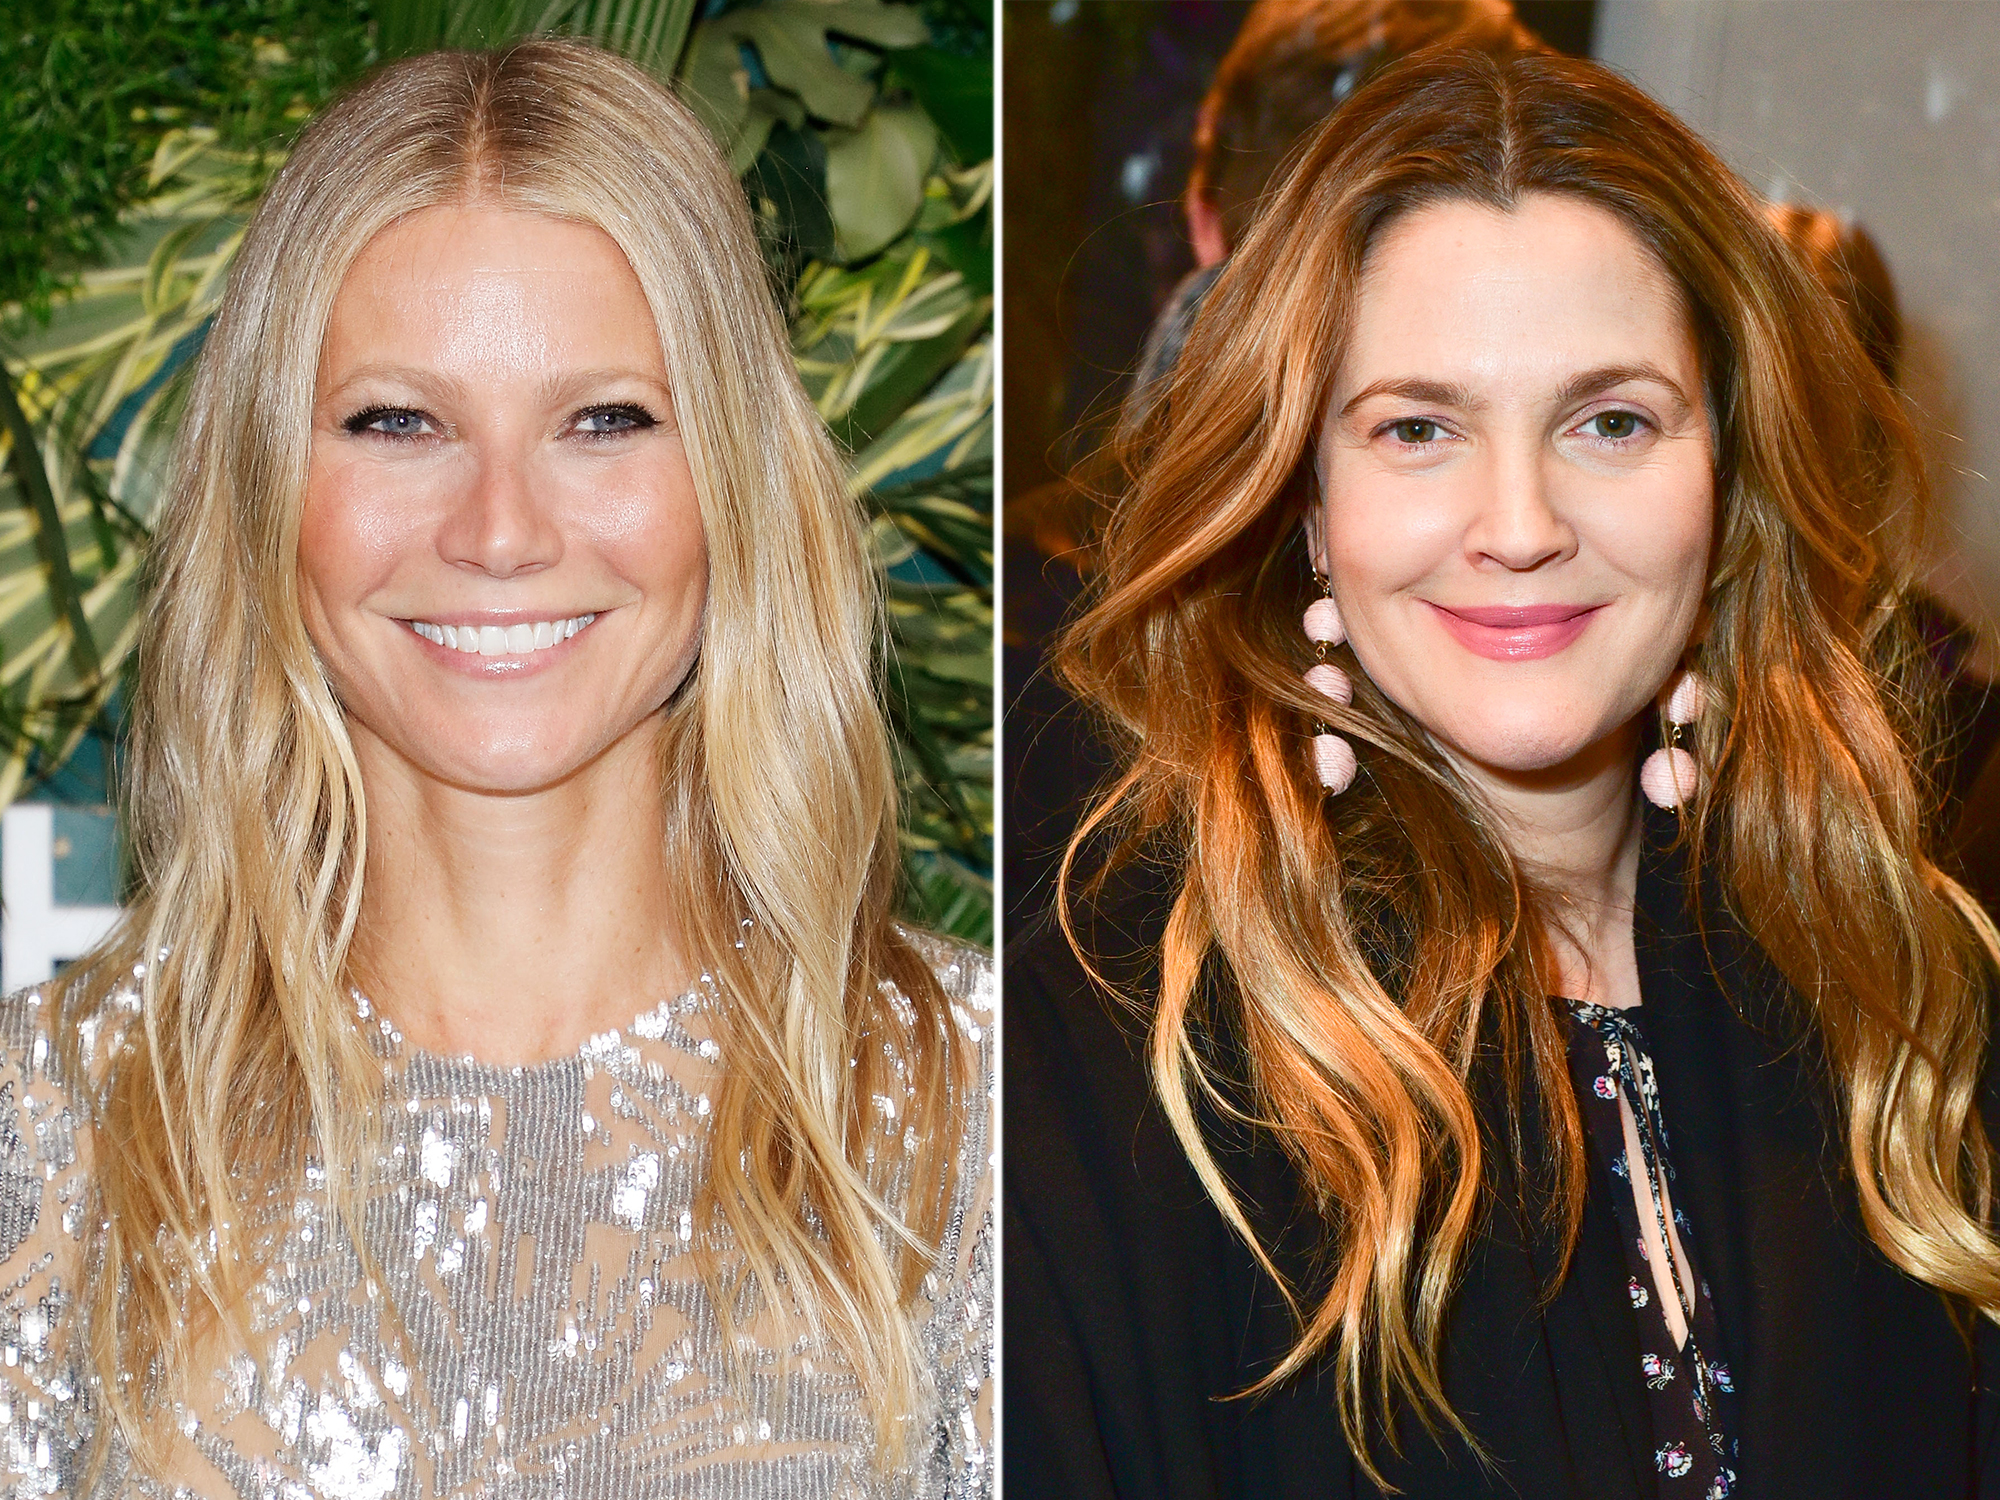 Gwyneth Paltrow and Drew Barrymore